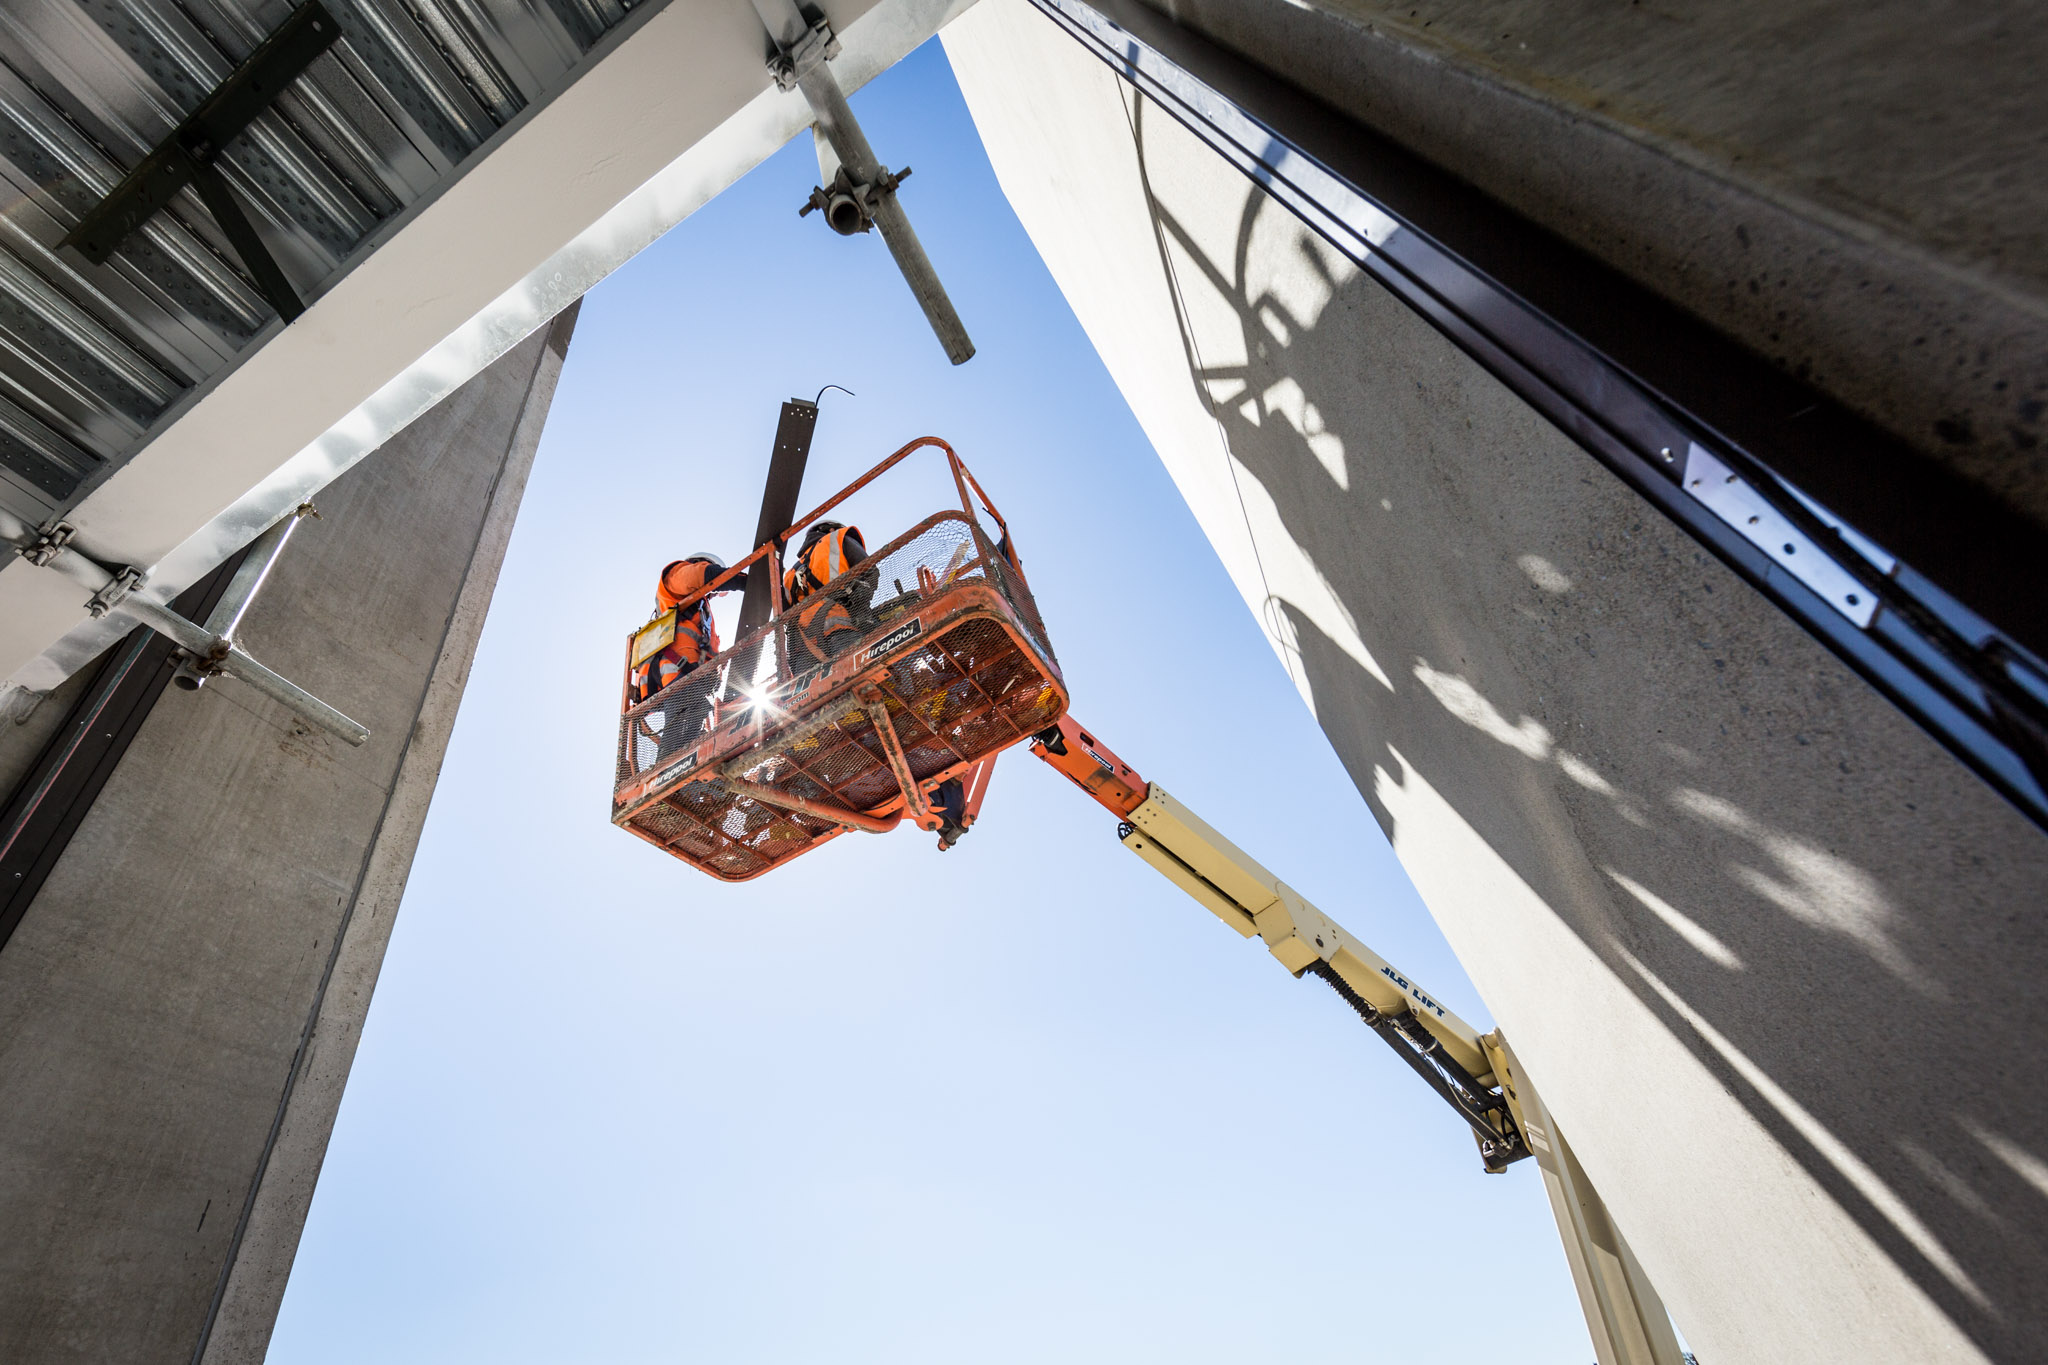 Boom lift and concrete panels